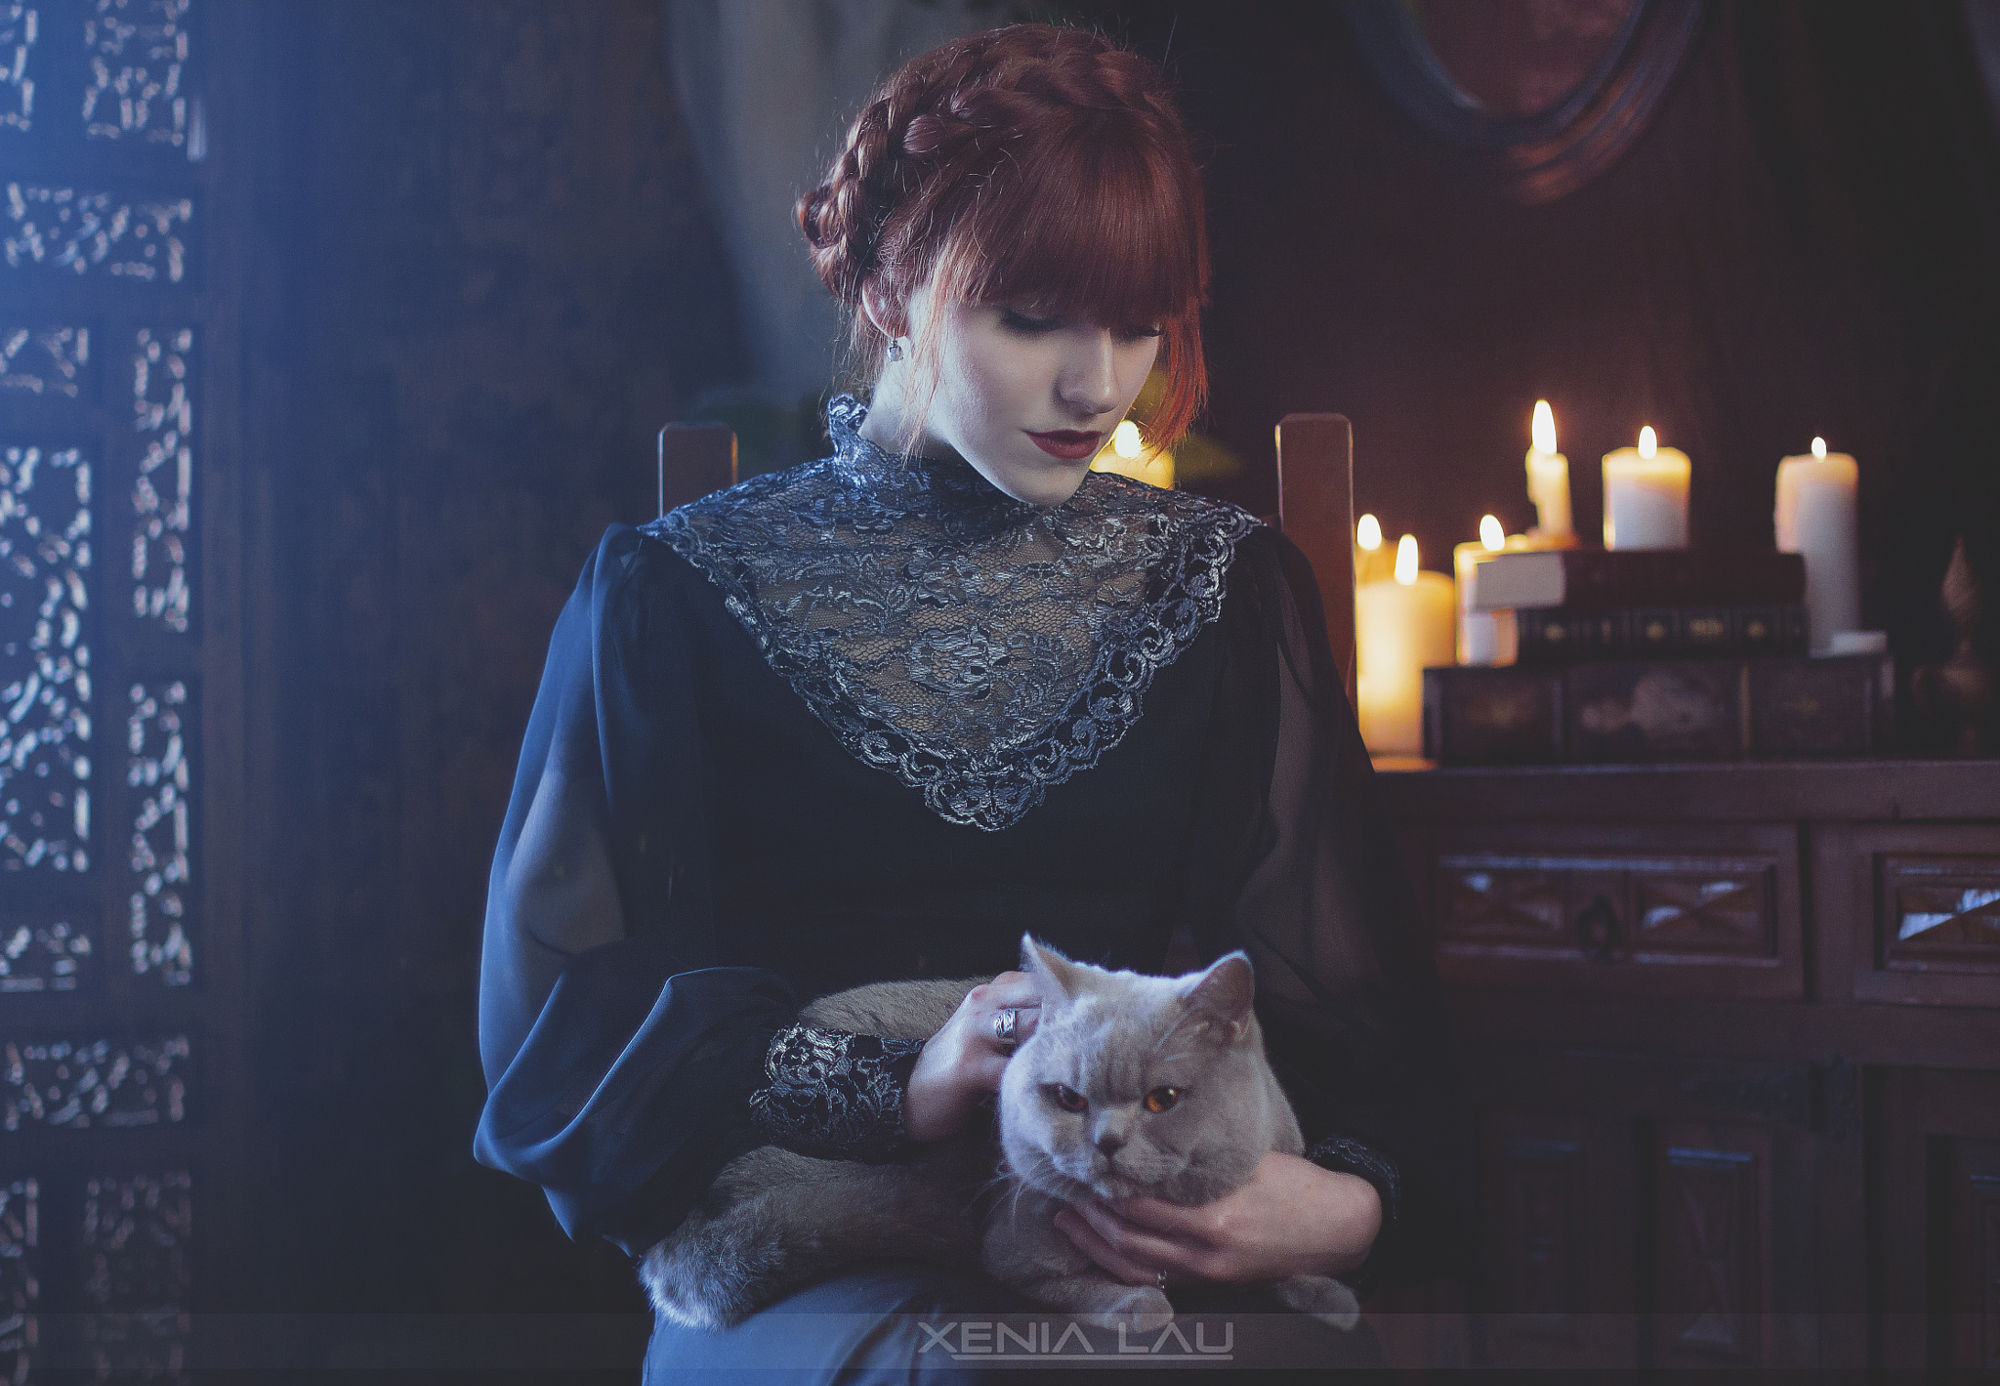 Portraits of girls with cats, like from the Renaissance 01